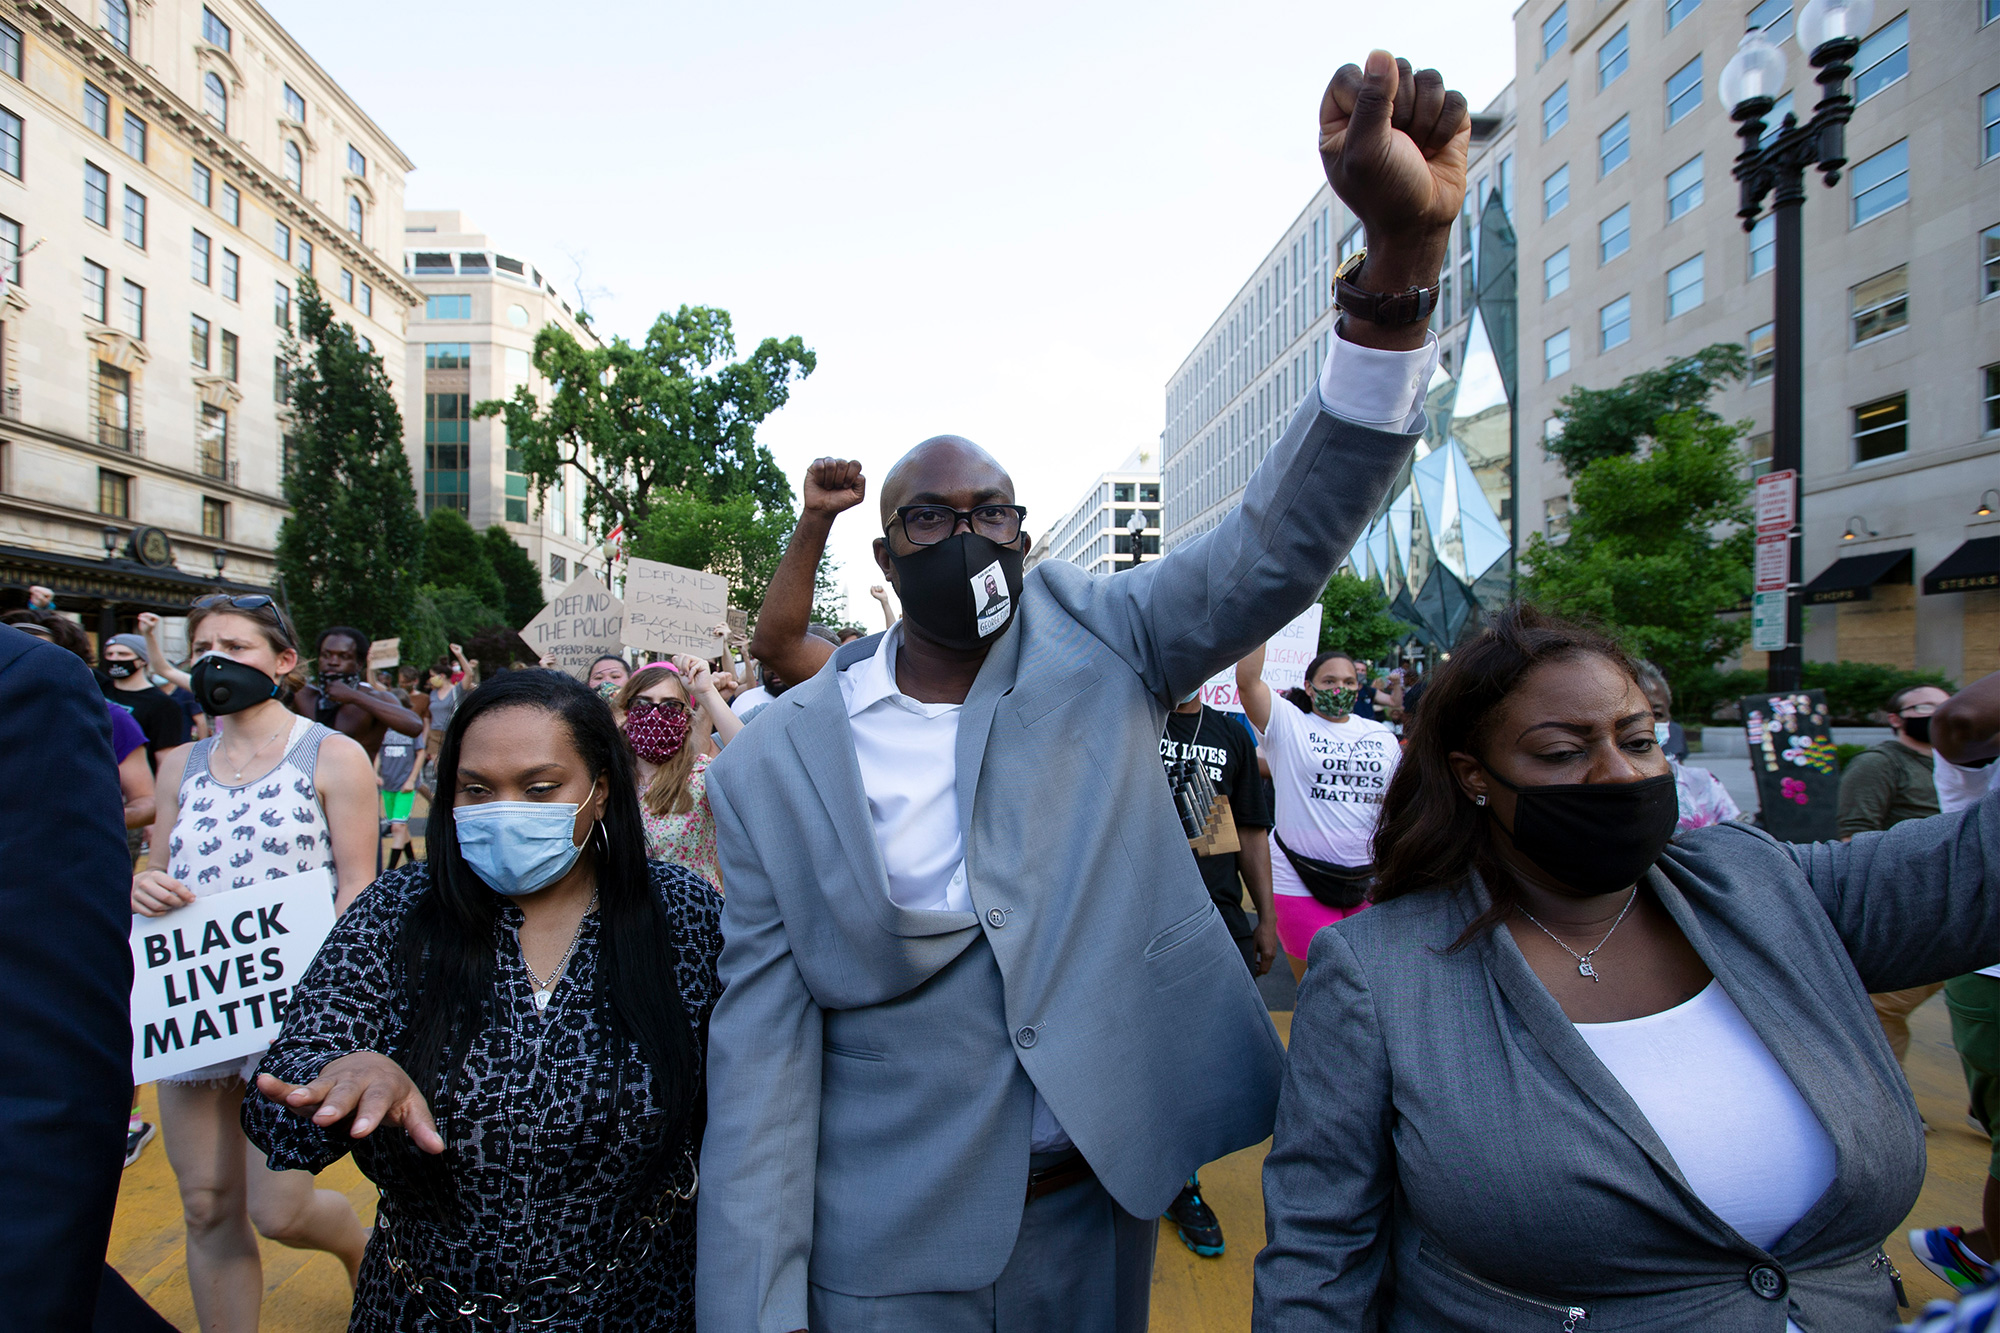 Philonise Floyd (C), George Floyd's brother, holds up his fist as he marches with others on Black Lives Matter Plaza near the White House, to protest police brutality and racism, on June 10, 2020 in Washington, DC.